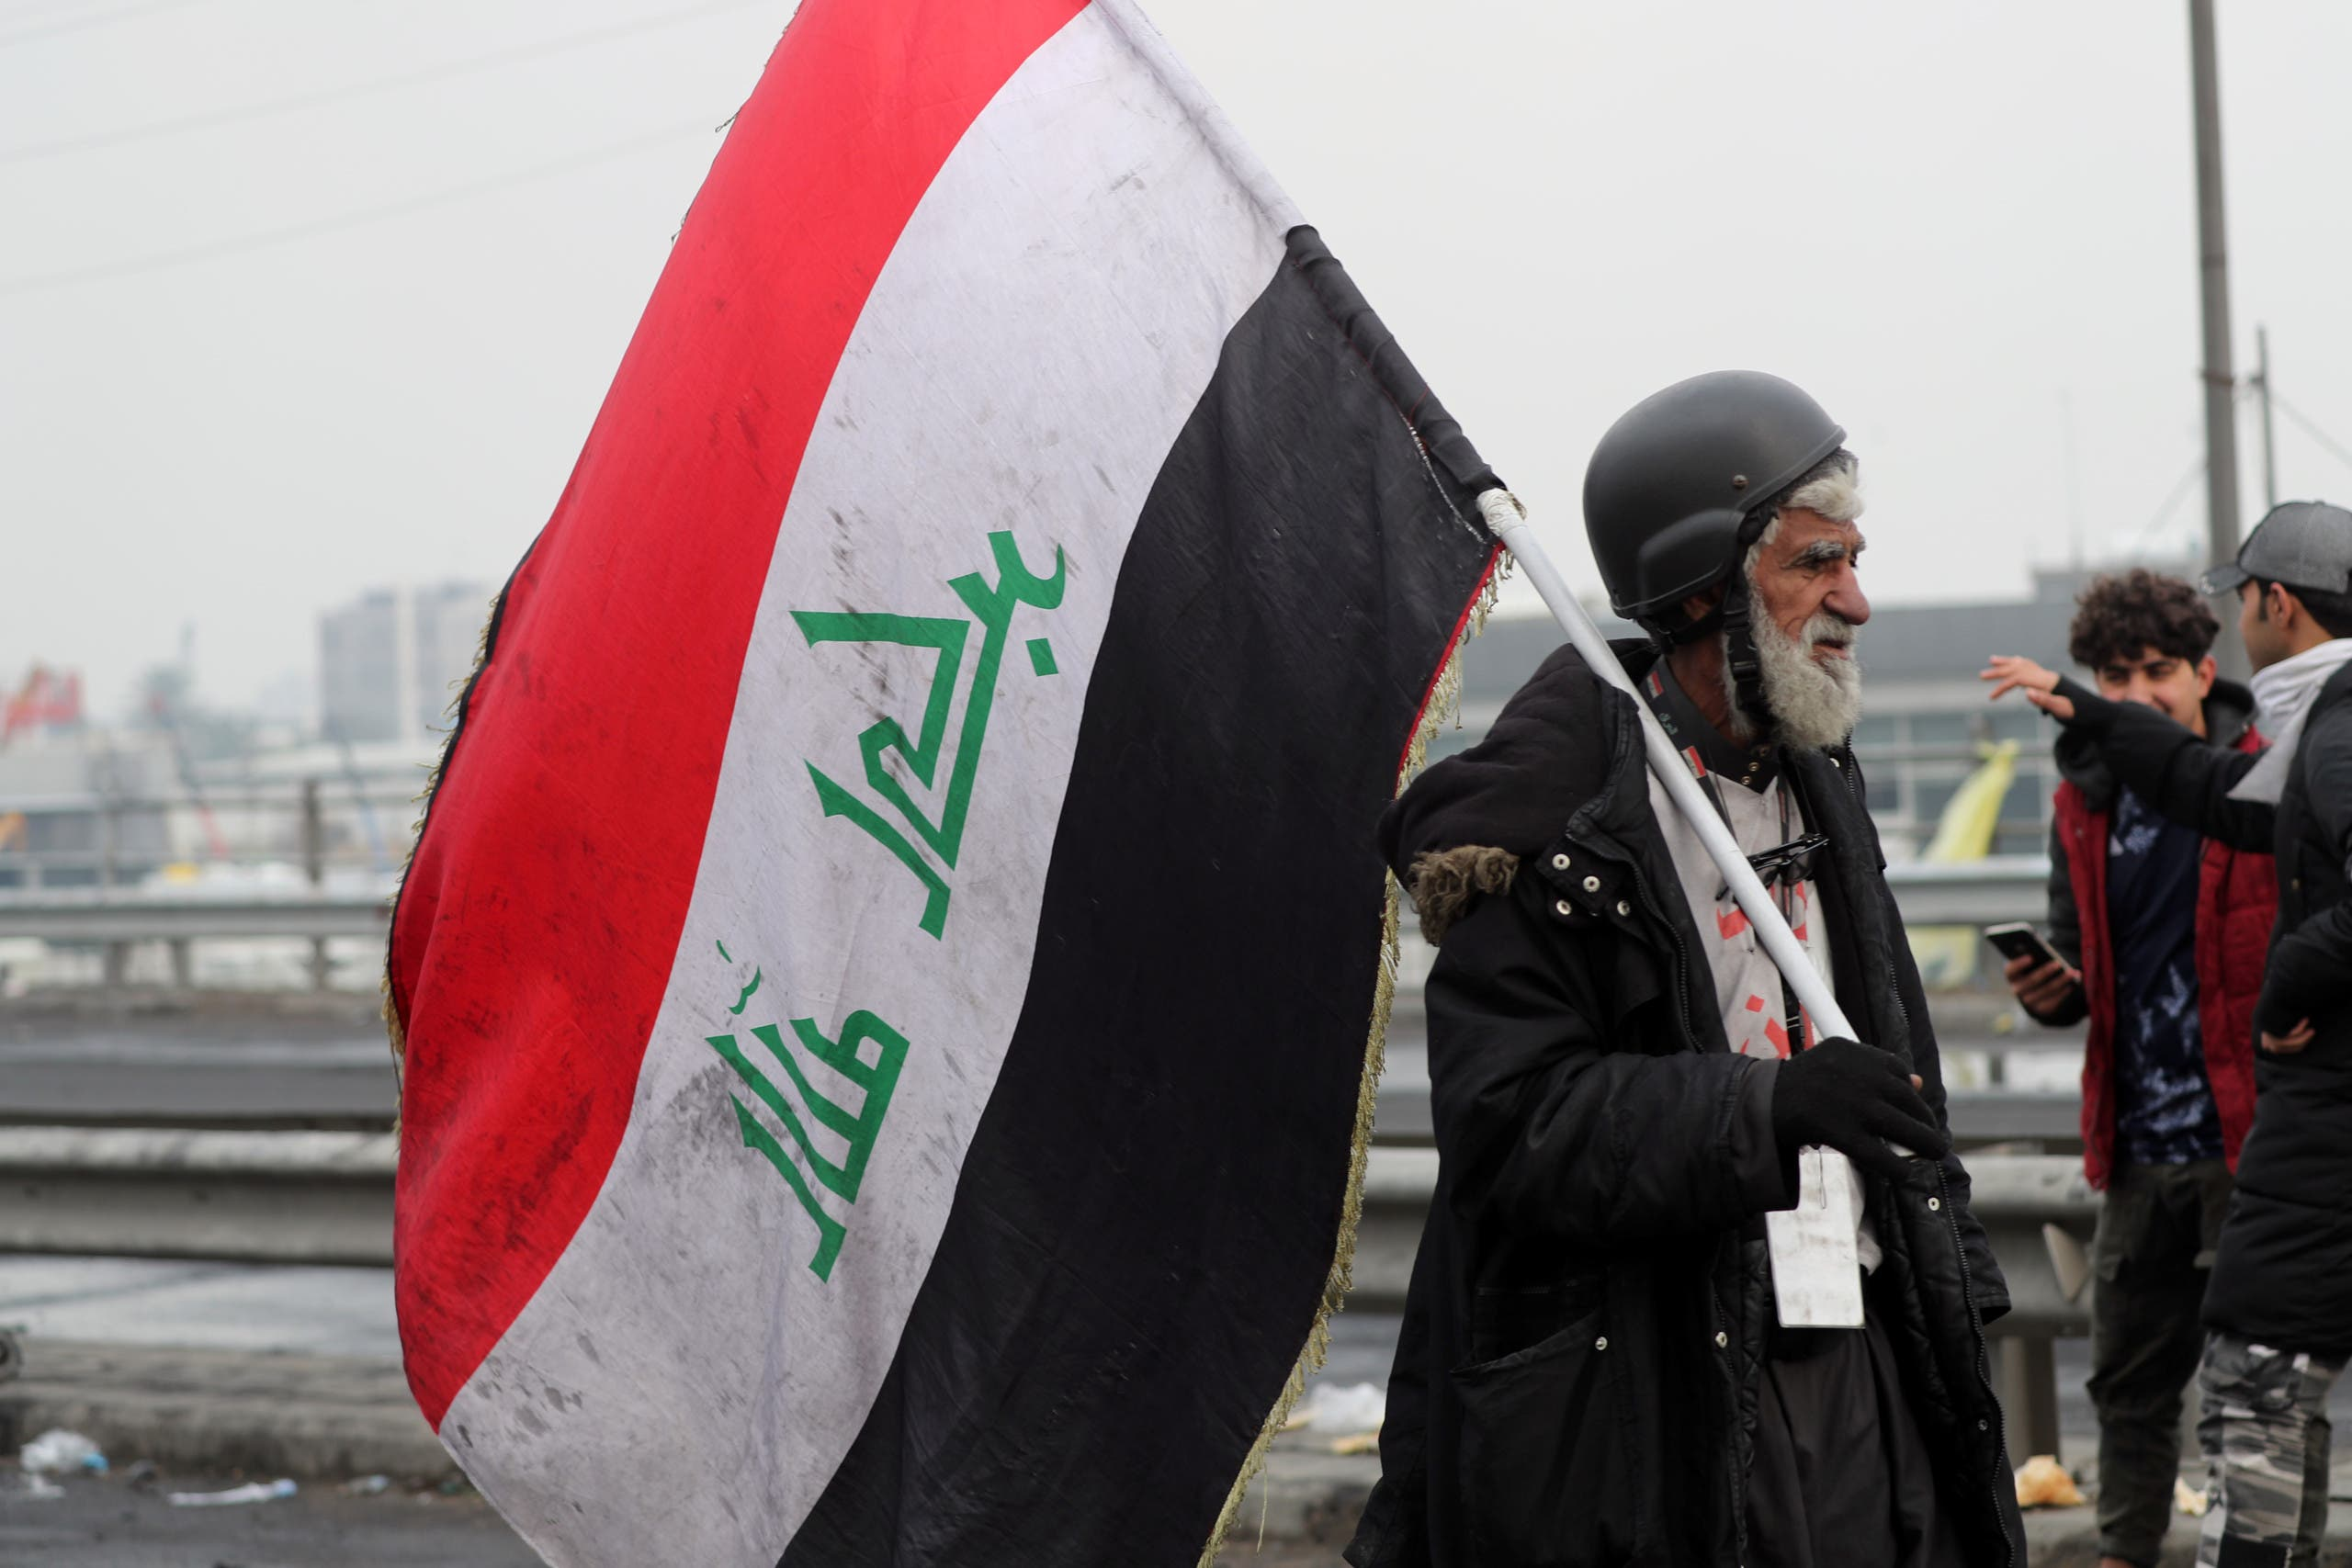 An Iraqi demonstrator holds an Iraqi flag during ongoing anti-government protests in Baghdad, Iraq, January 23, 2020. (Reuters)